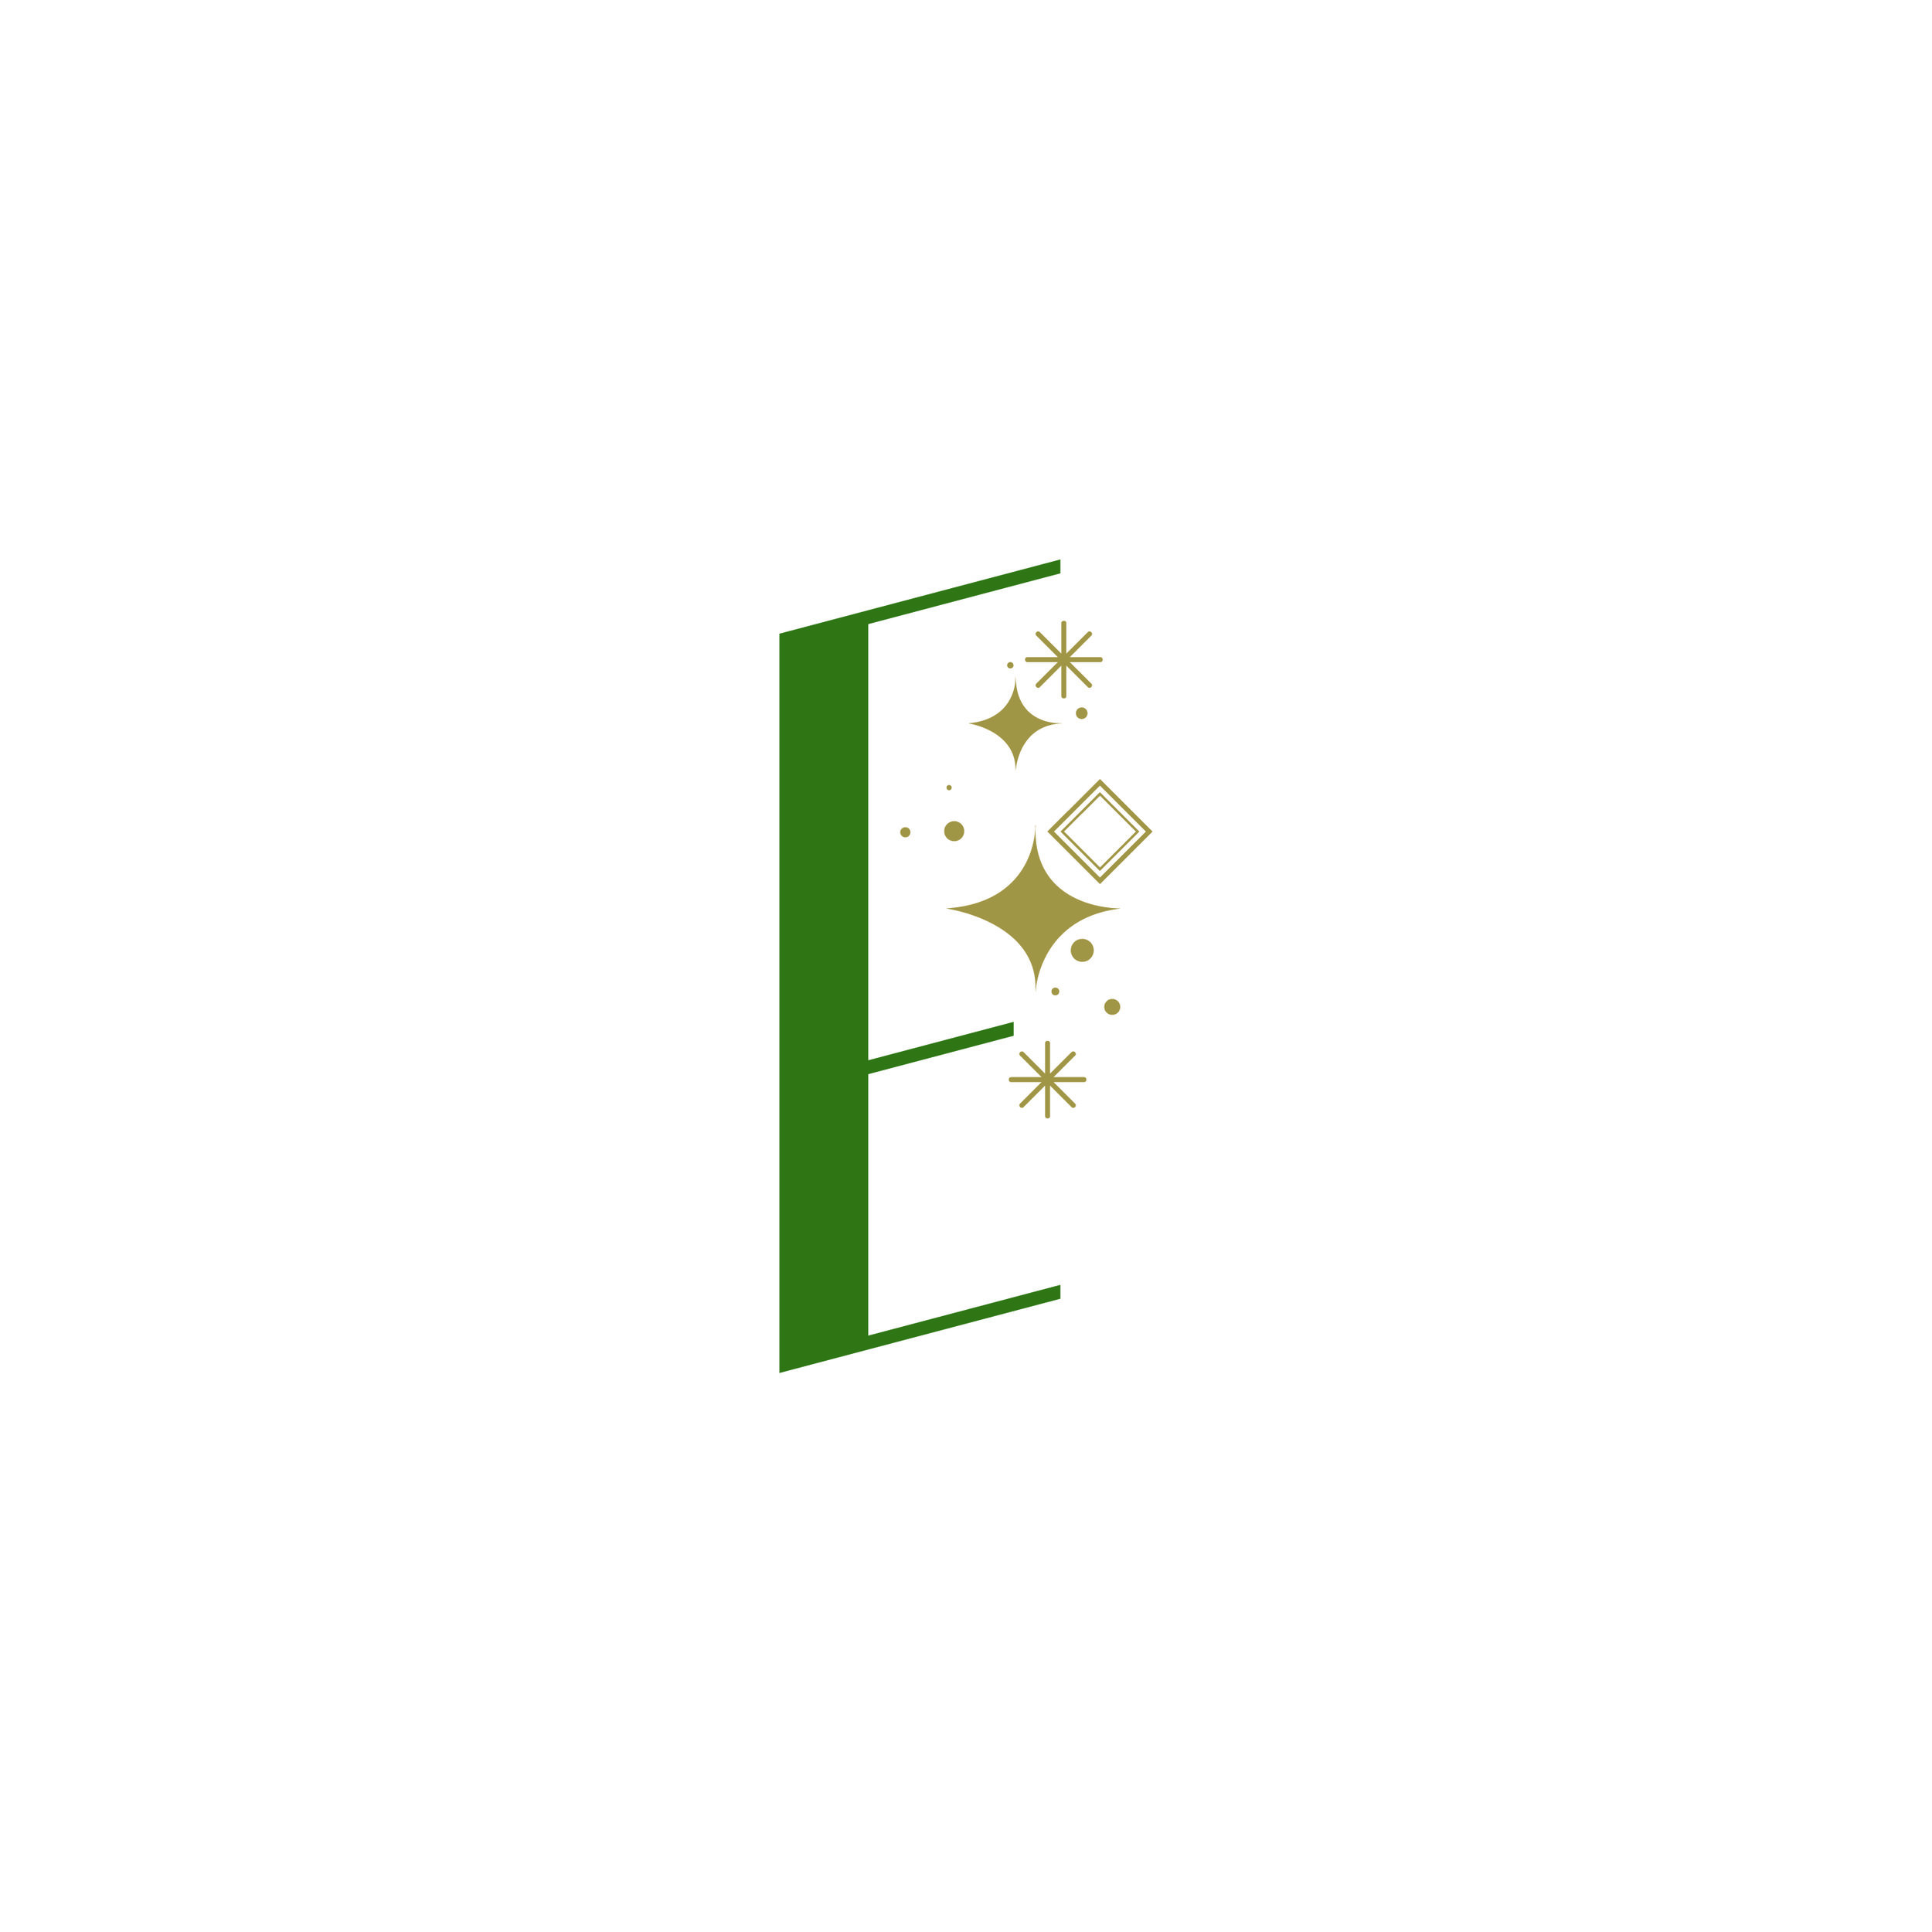 0518-bh-est-logofile_icon-greenletter-goldstars.jpg